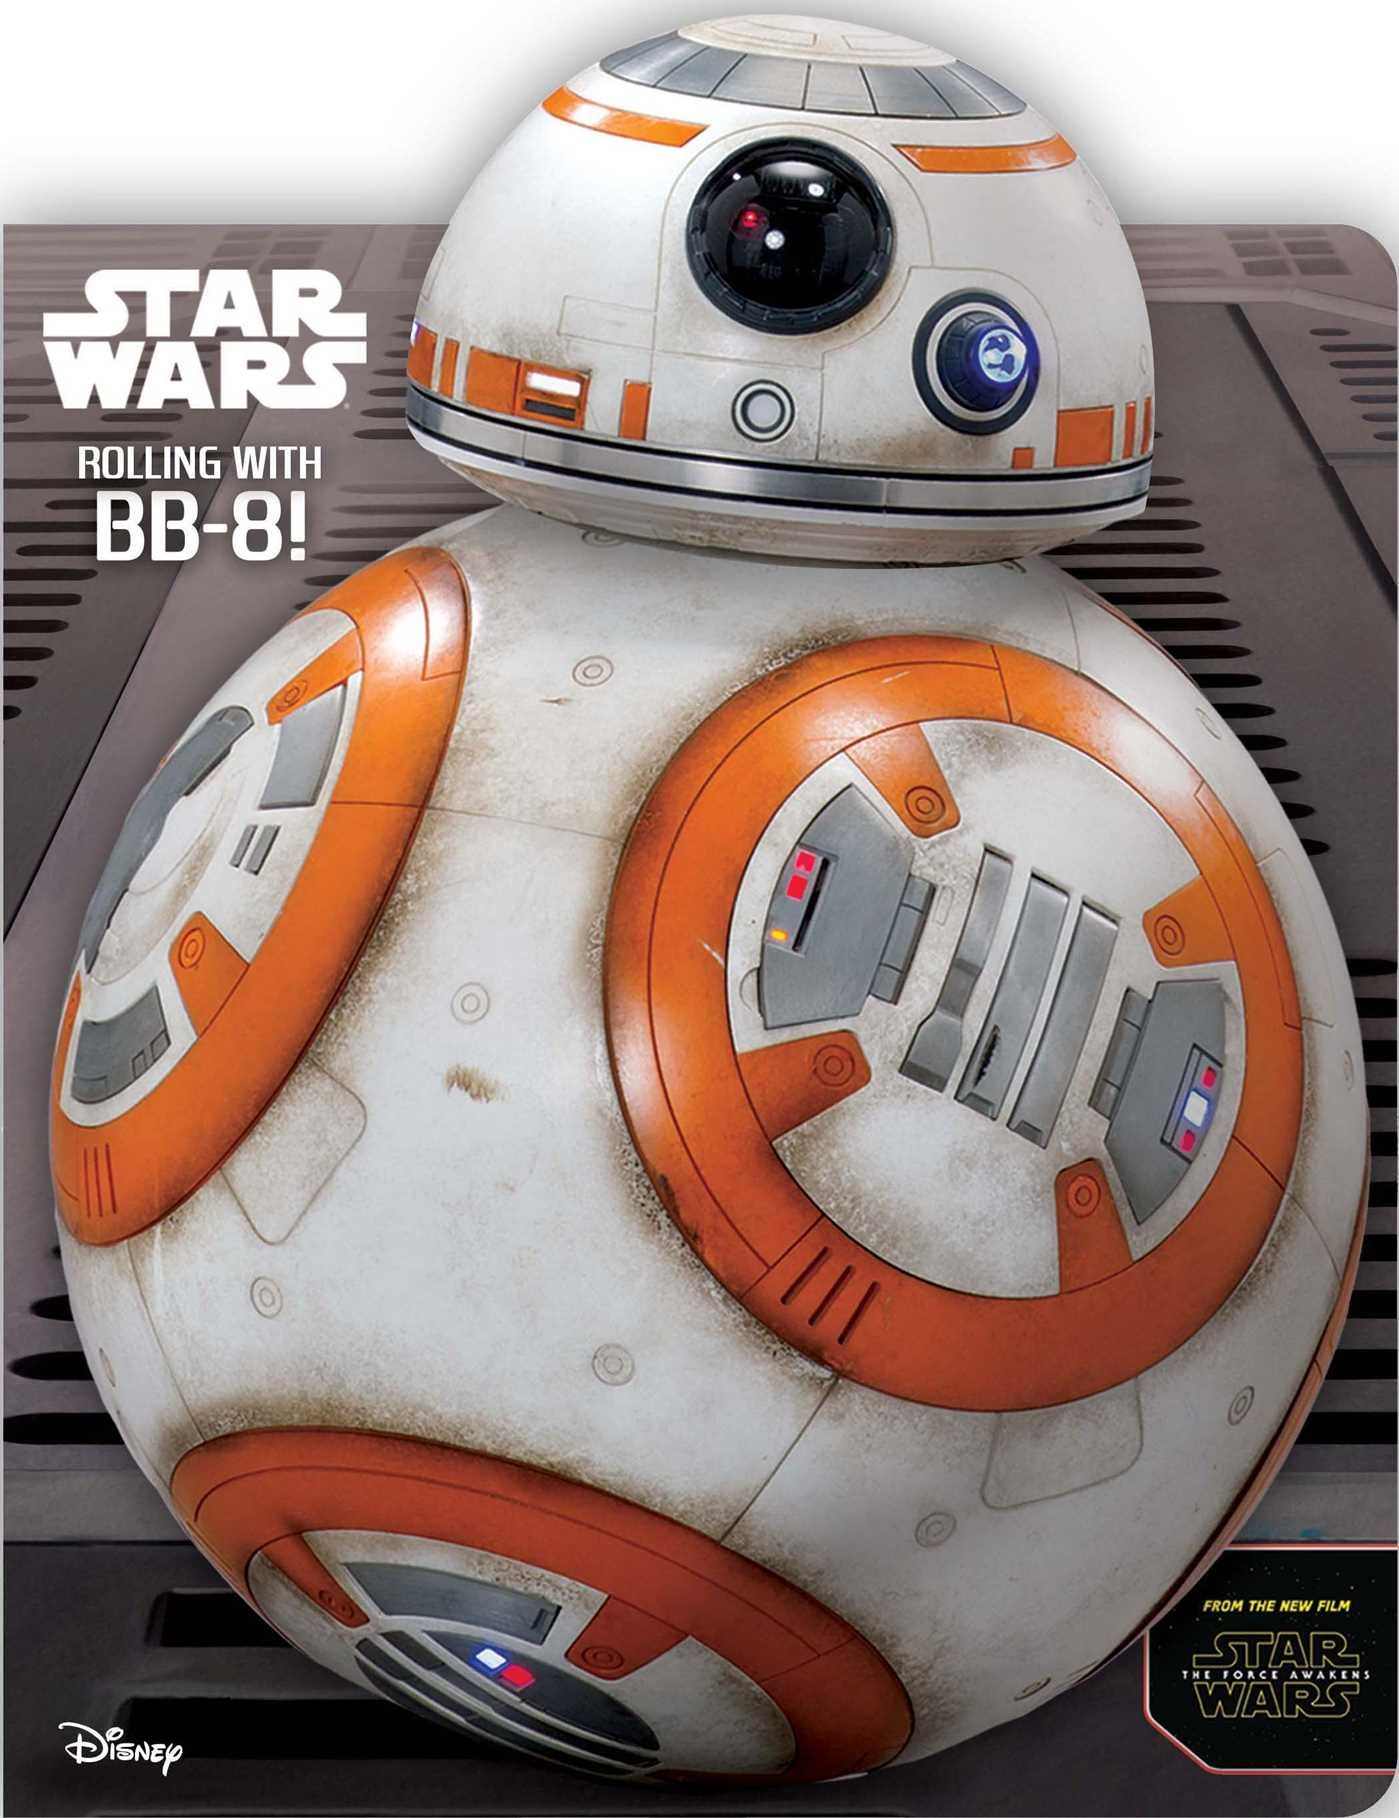 Star Wars Rolling With BB-8